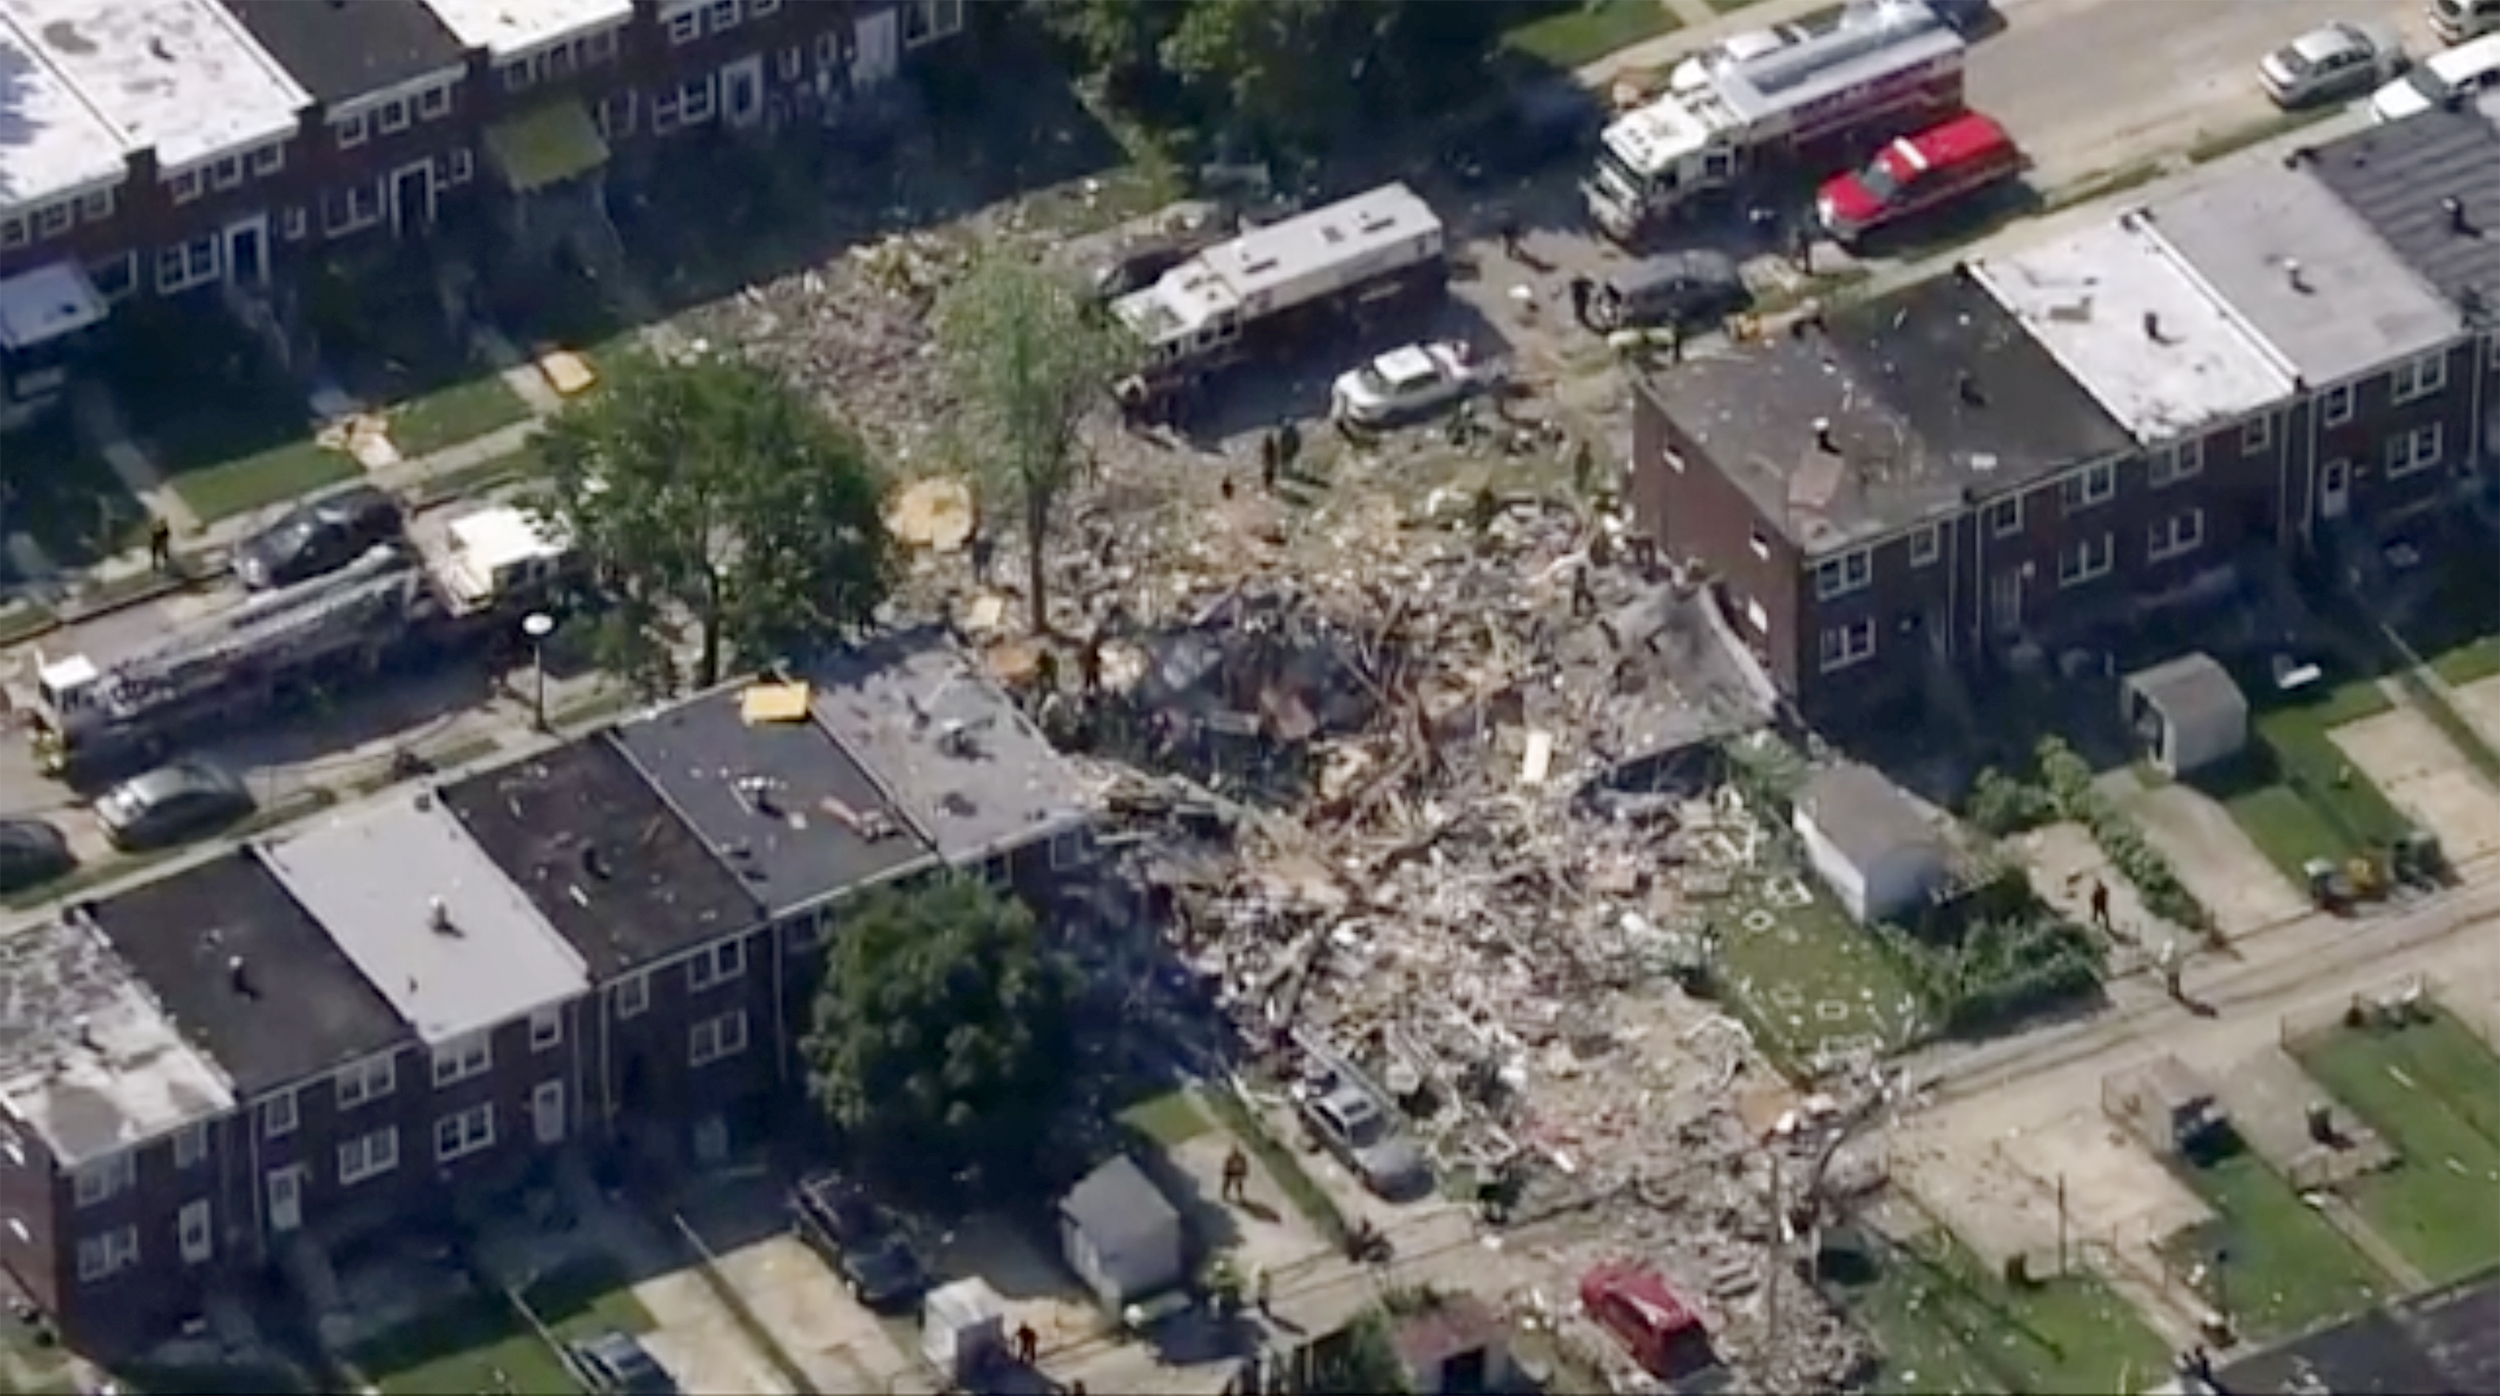 Explosion at homes in Baltimore kills 1 person and injures 7 others